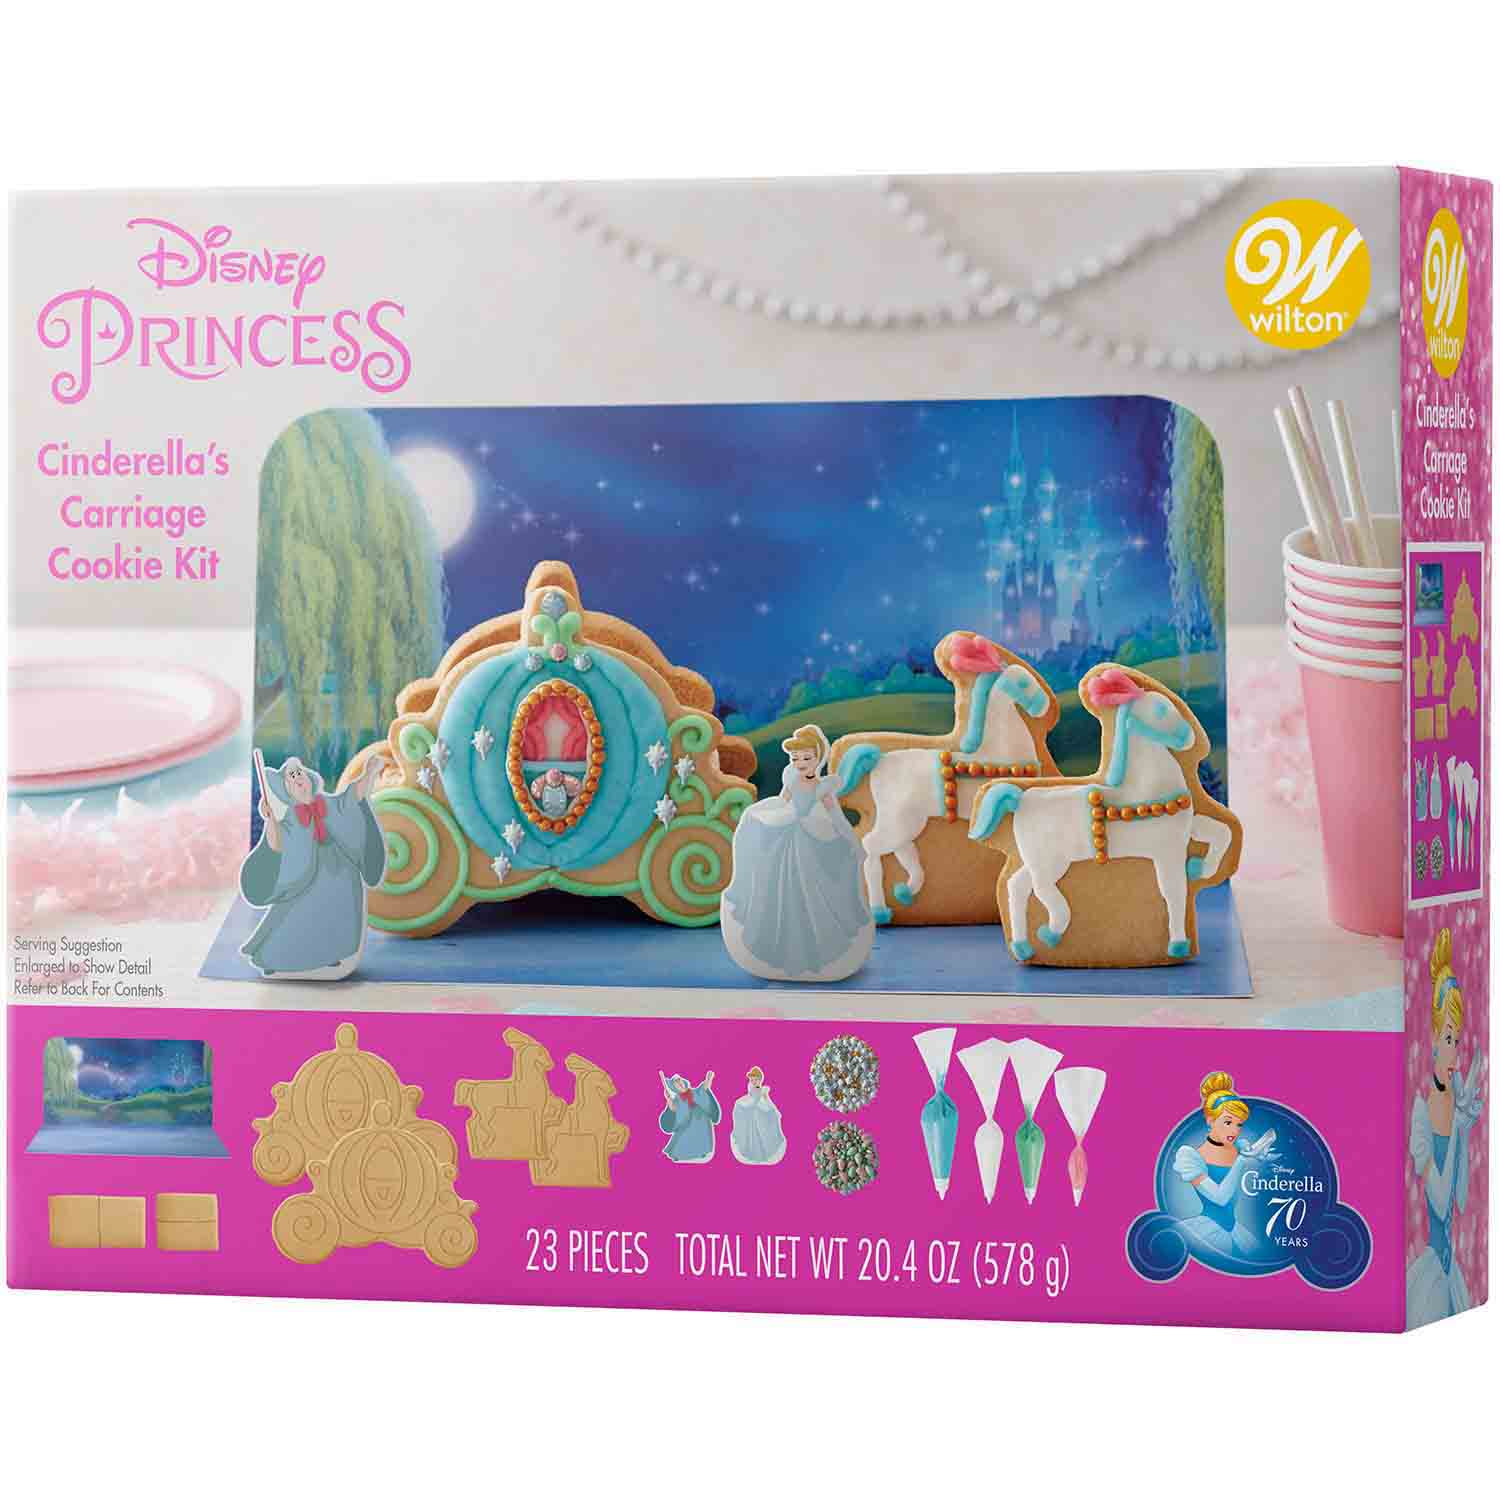 Cinderella's Carriage Cookie Kit